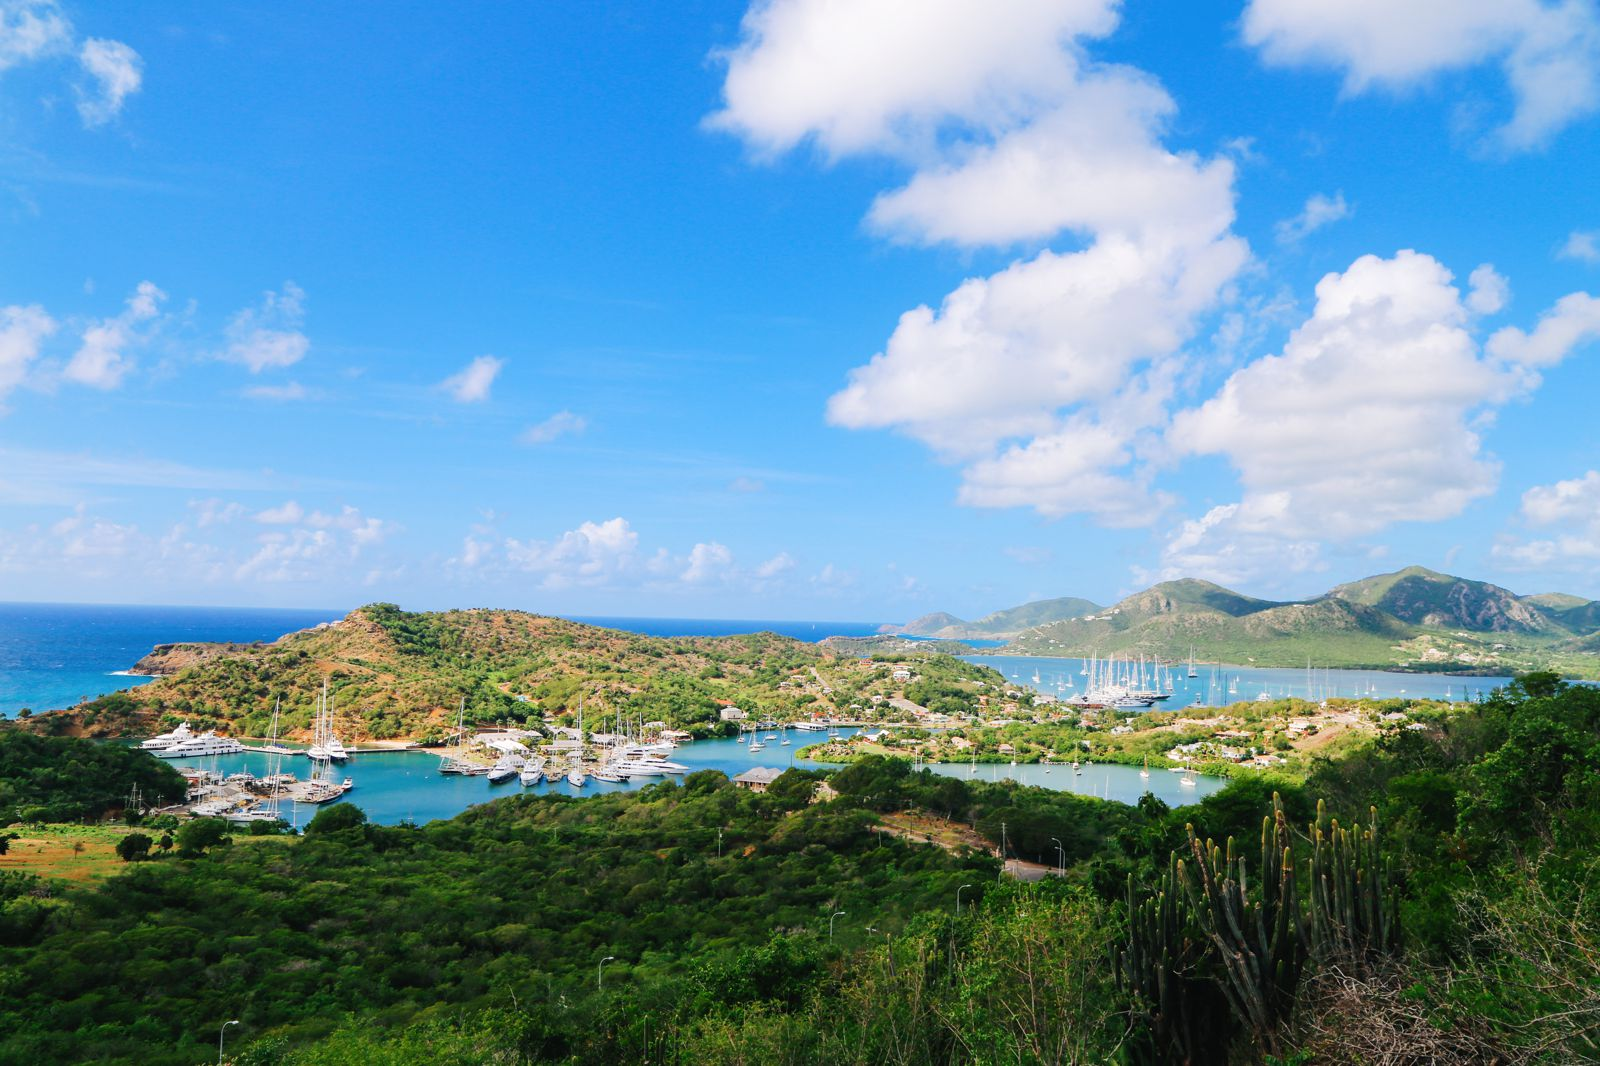 Exploring The Caribbean Island Of Antigua By Land - Part 1 (35)